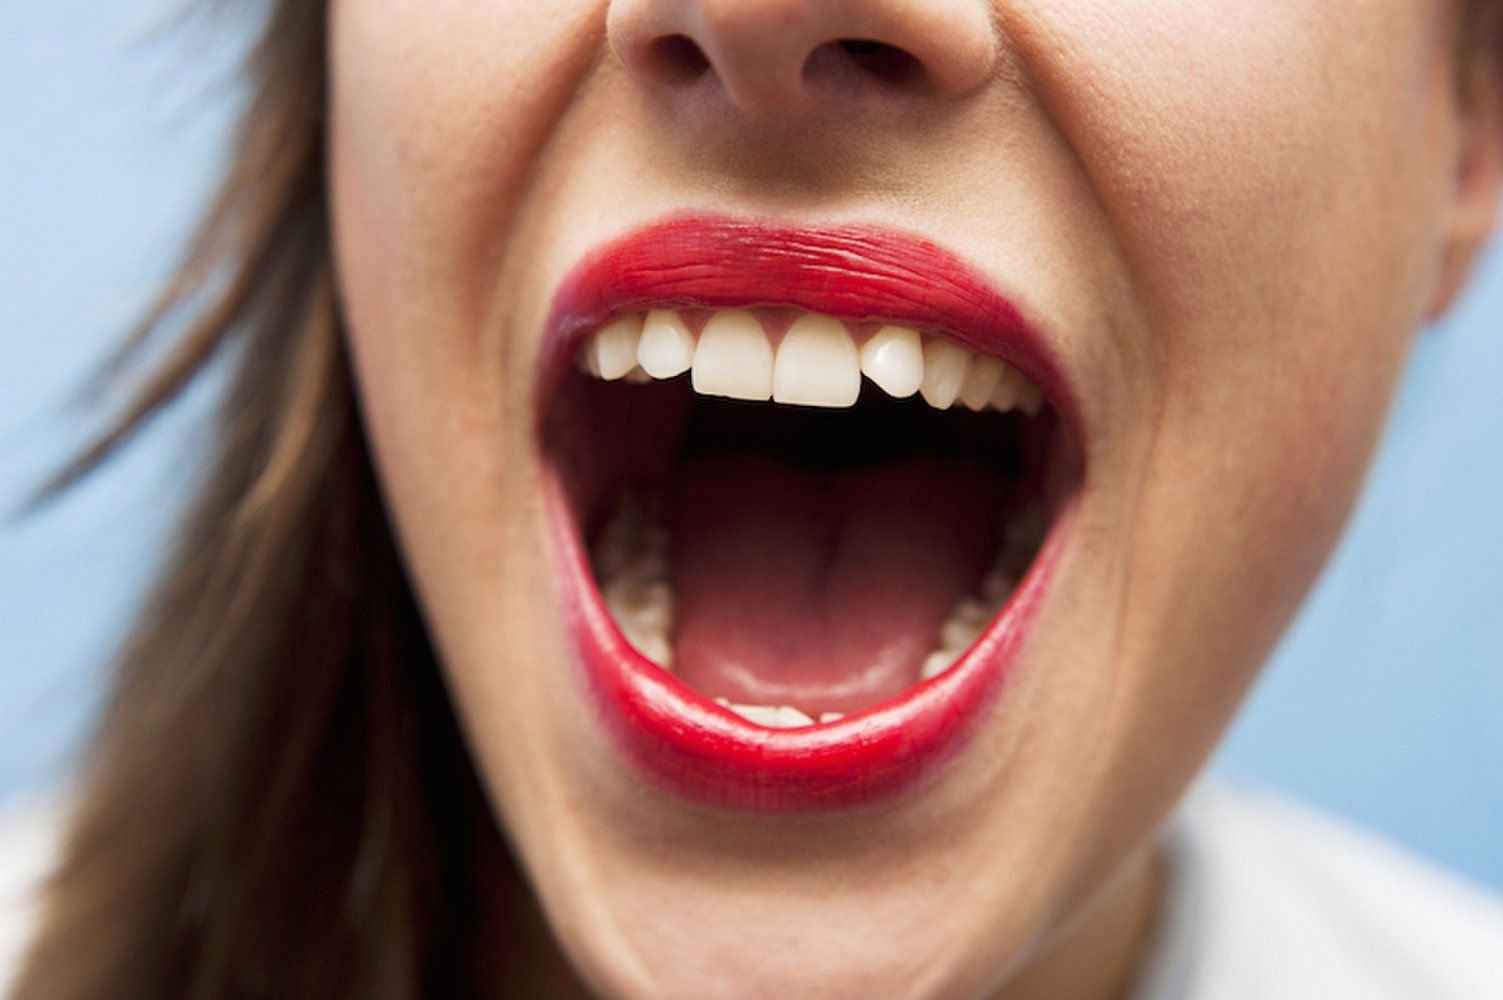 Woman's 'Burning Mouth Syndrome' Had Strange Cause